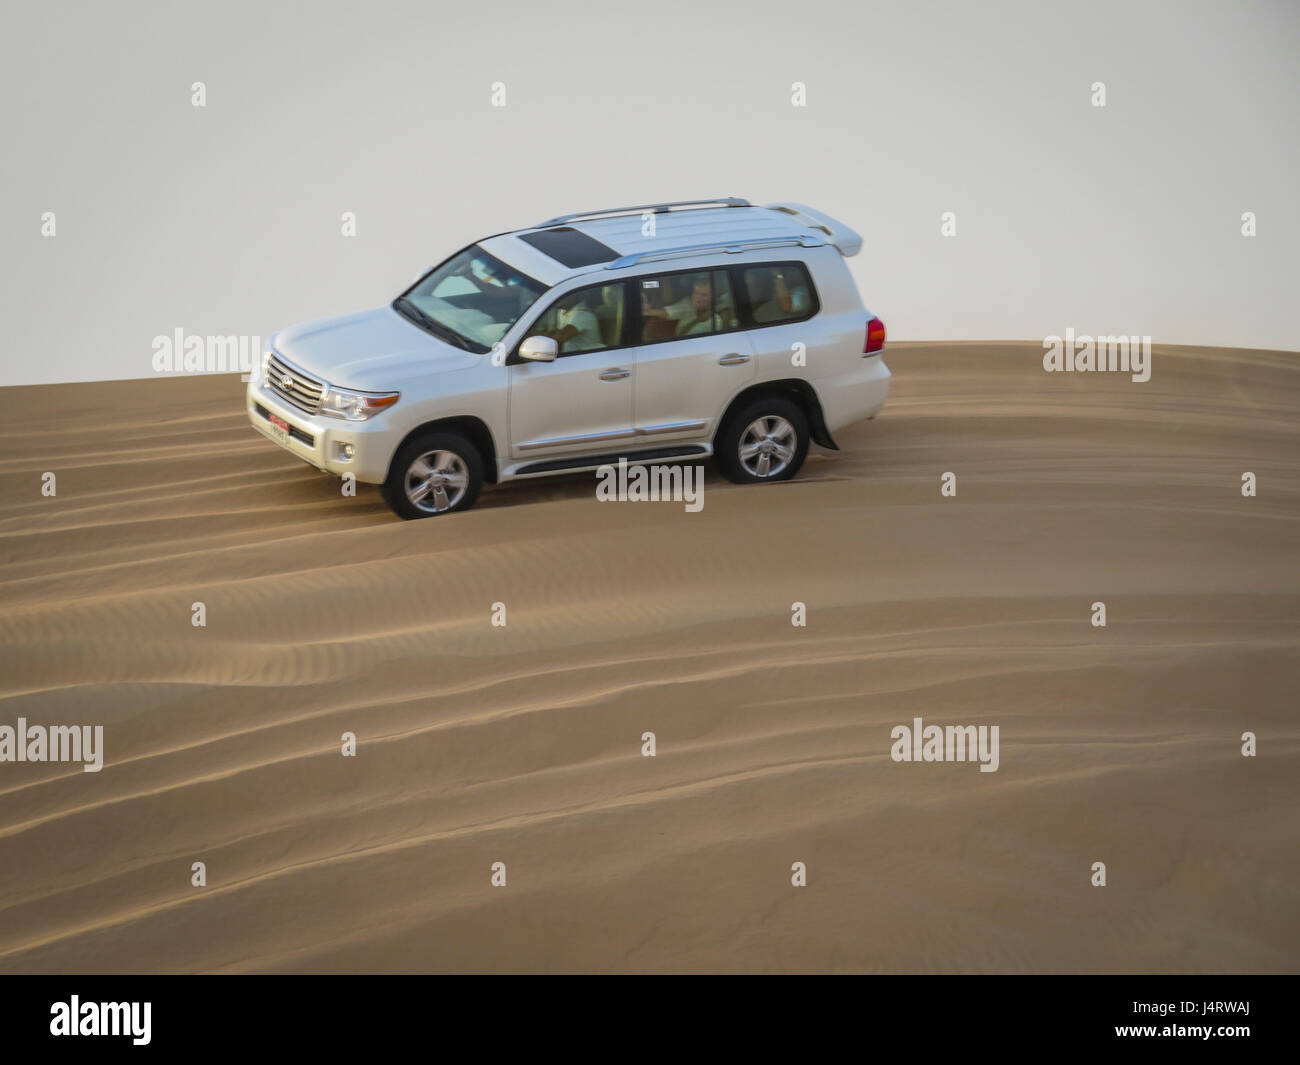 ARABIAN DESERT, ABU DHABI,UAE,8TH SEPT 2015:-Dune bashing at Dusk in 4 wheel drive trucks - Stock Image